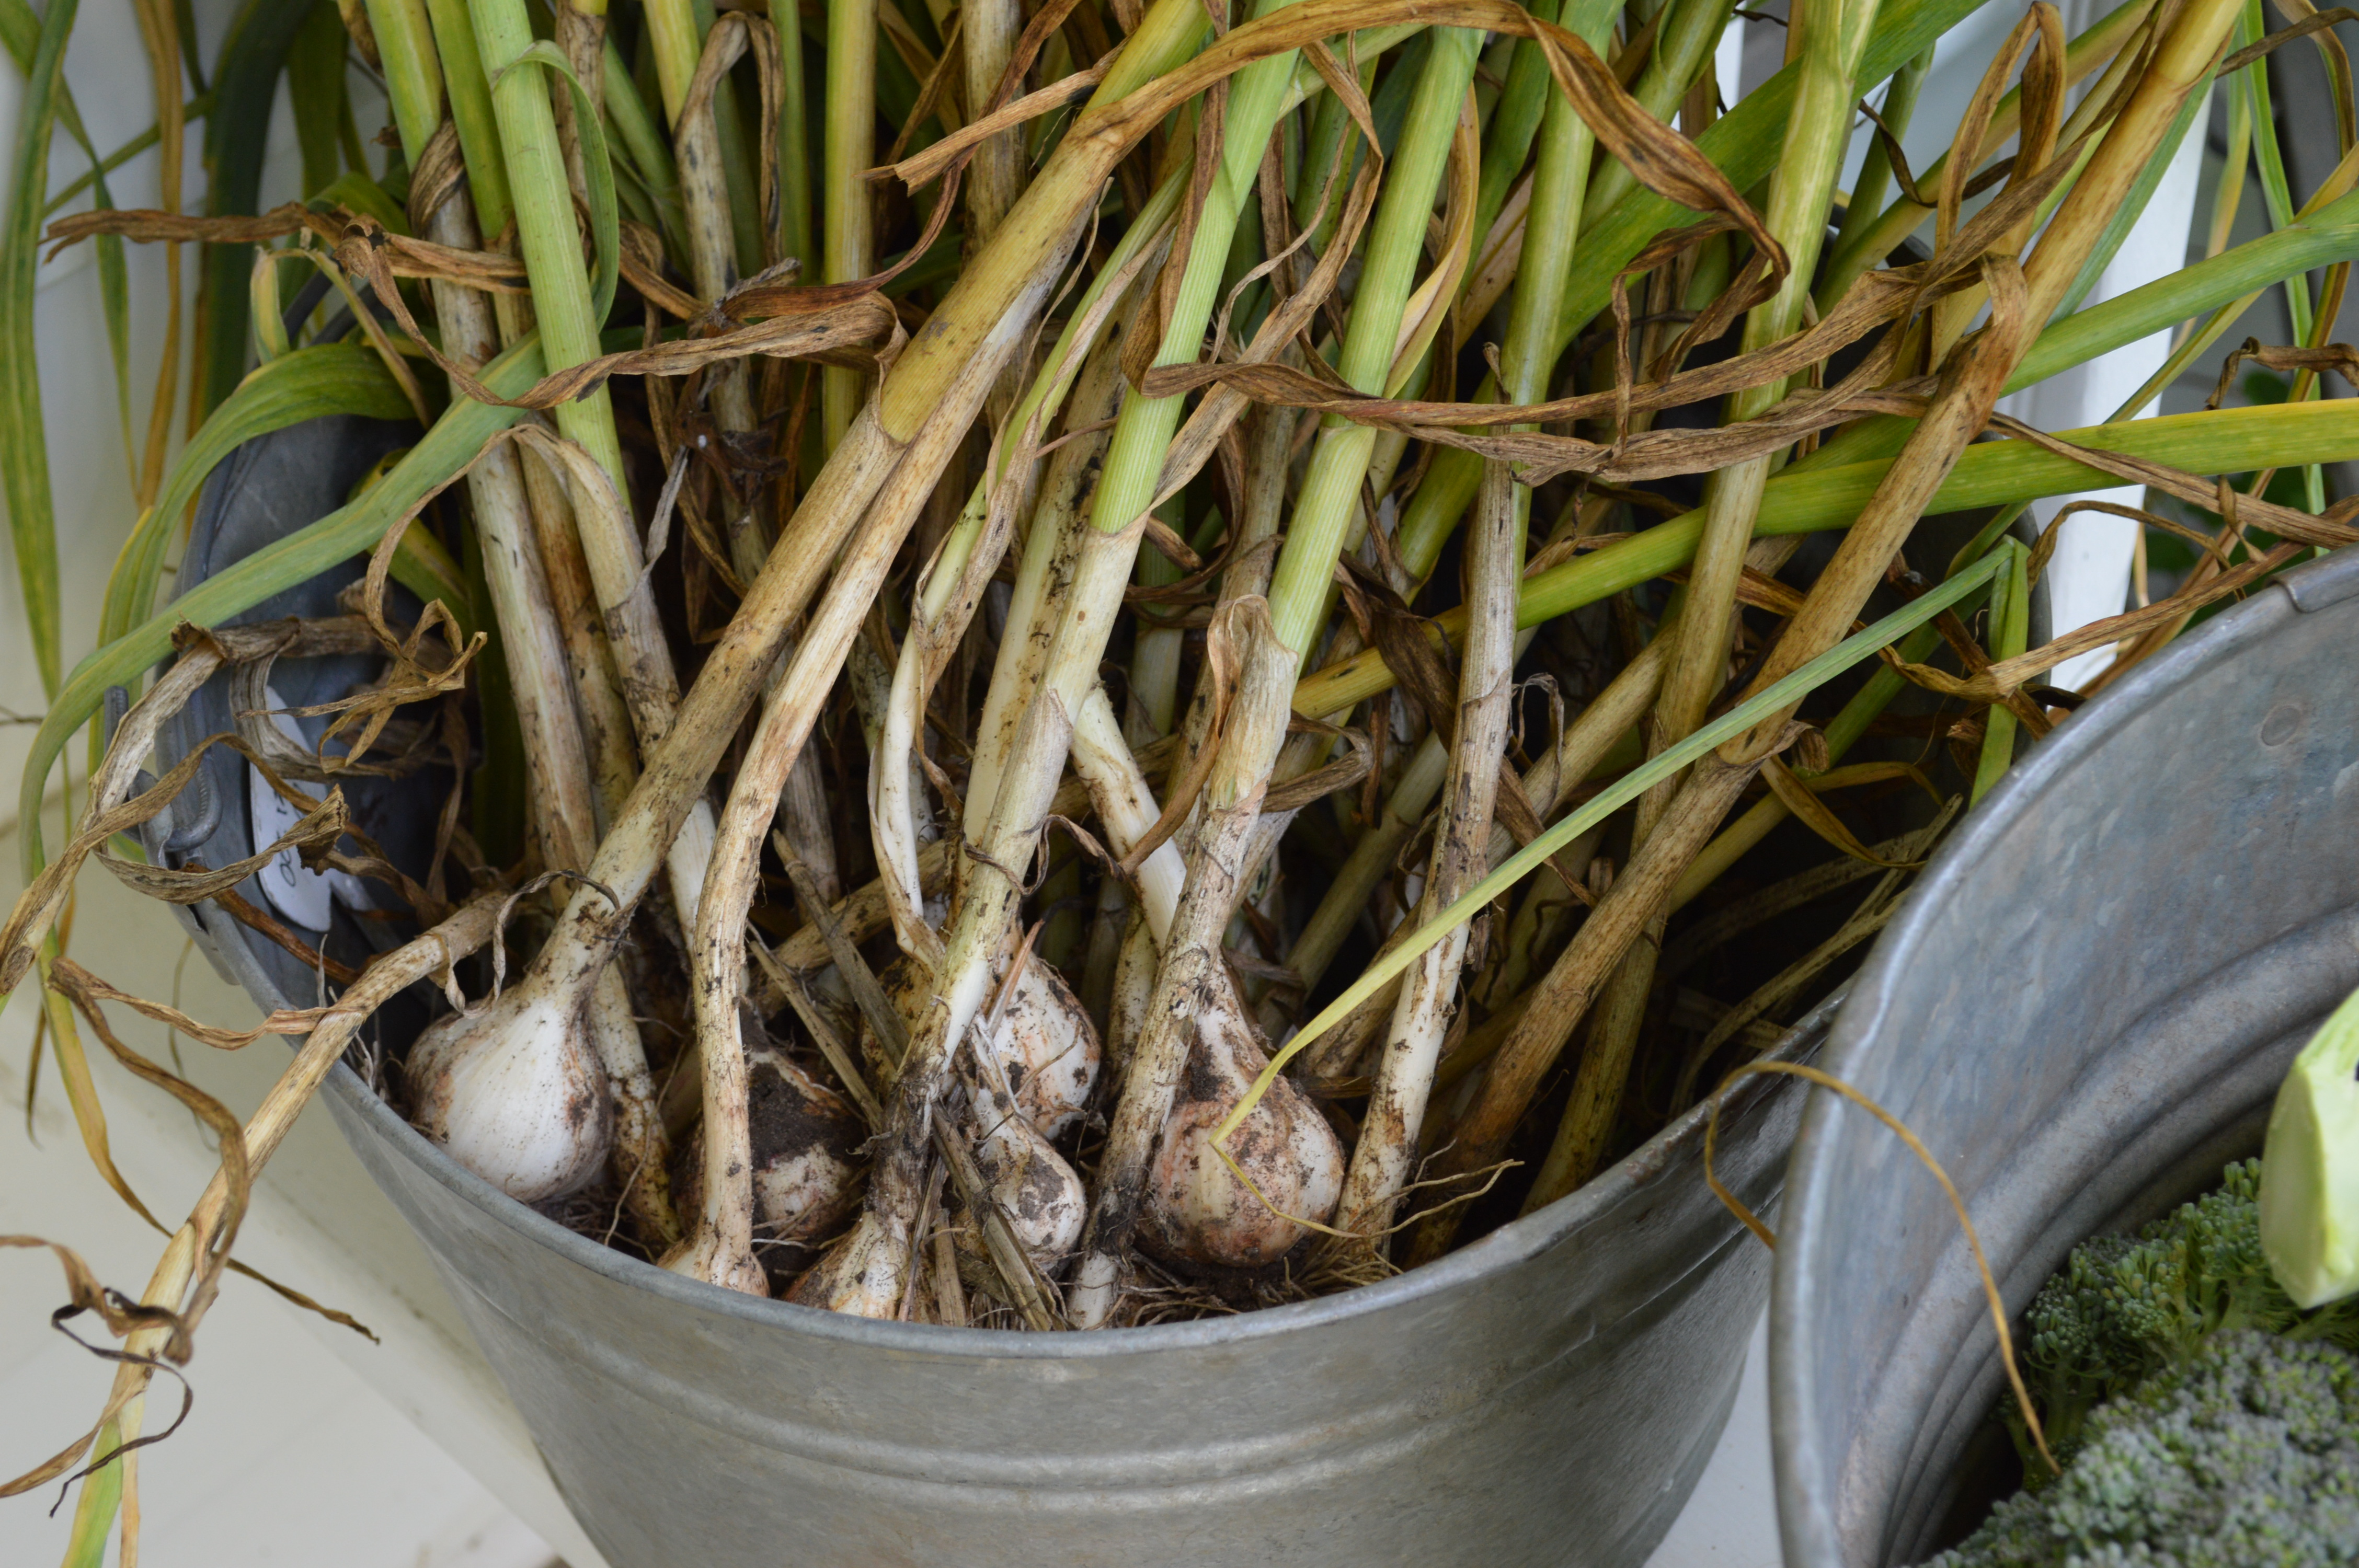 Garlic ready to be hung and cured in our barn.